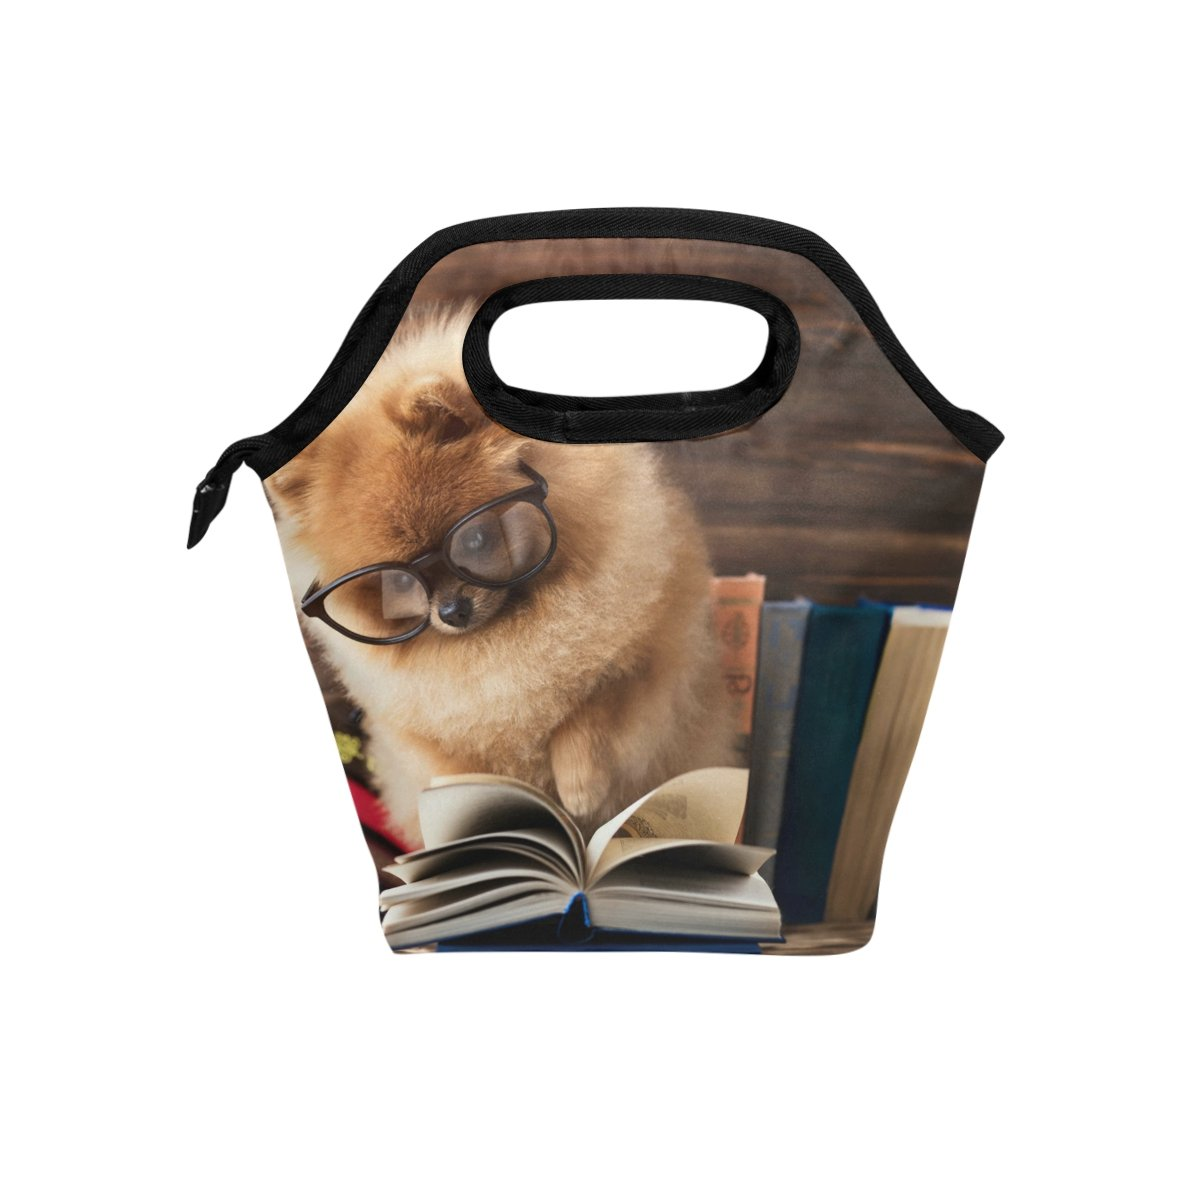 Bettken Lunch Bag Funny Animal Dog Insulated Reusable Lunch Box Portable Lunch Tote Bag Meal Bag Ice Pack for Kids Boys Girls Adult Men Women